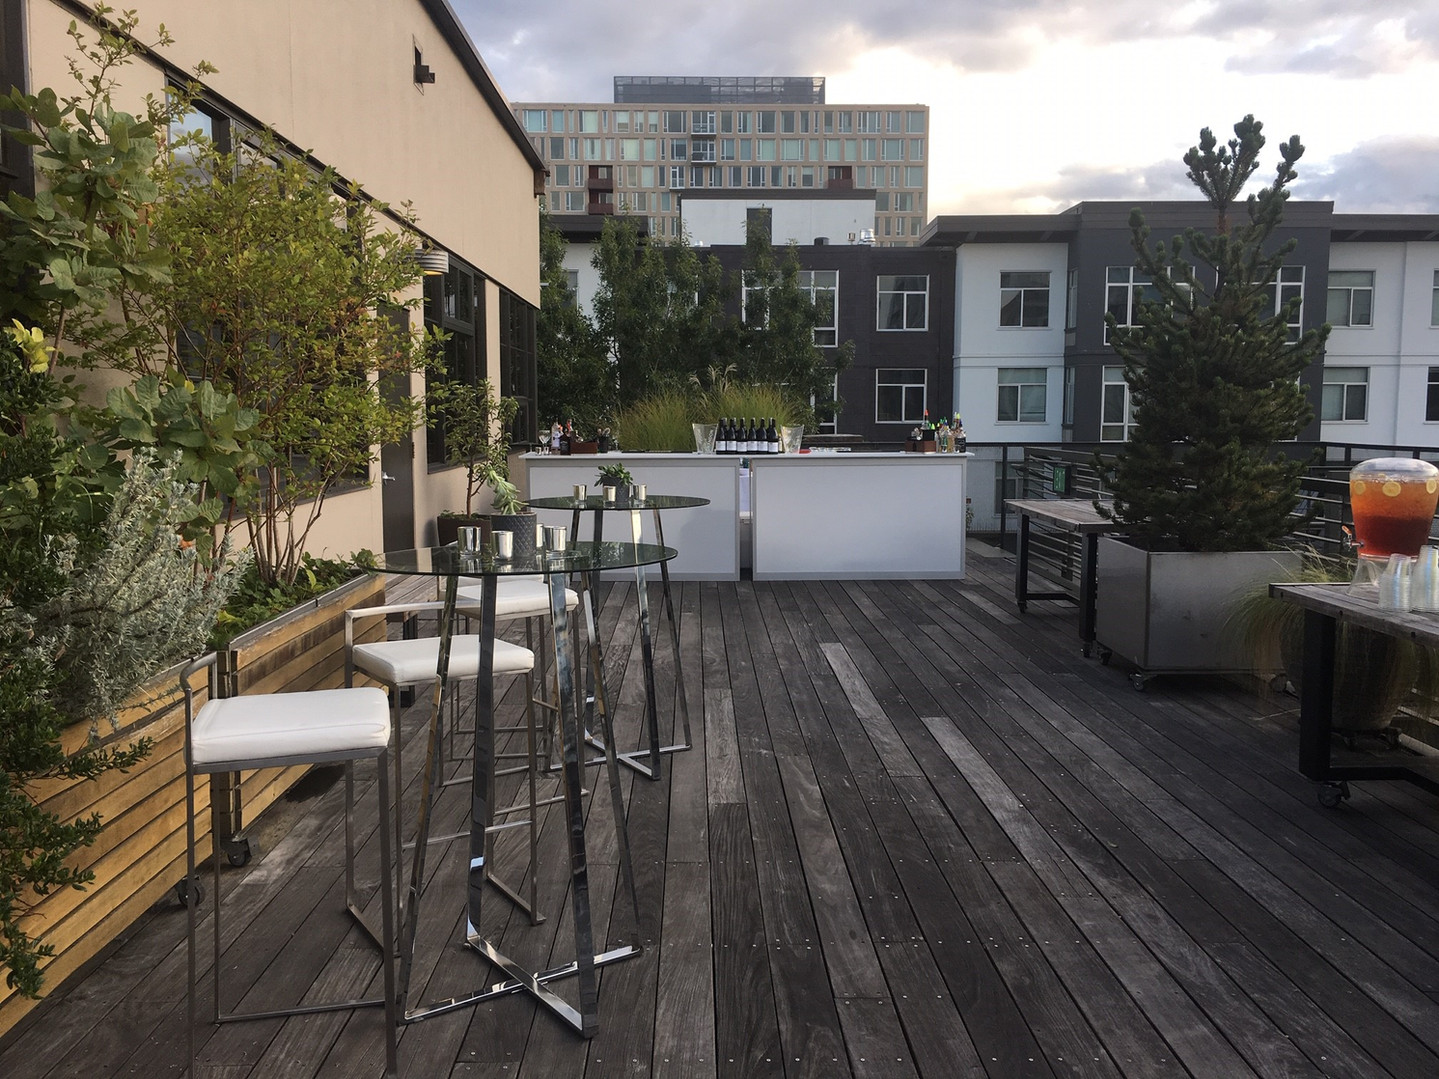 Bar Set up on the South End of the Terrace